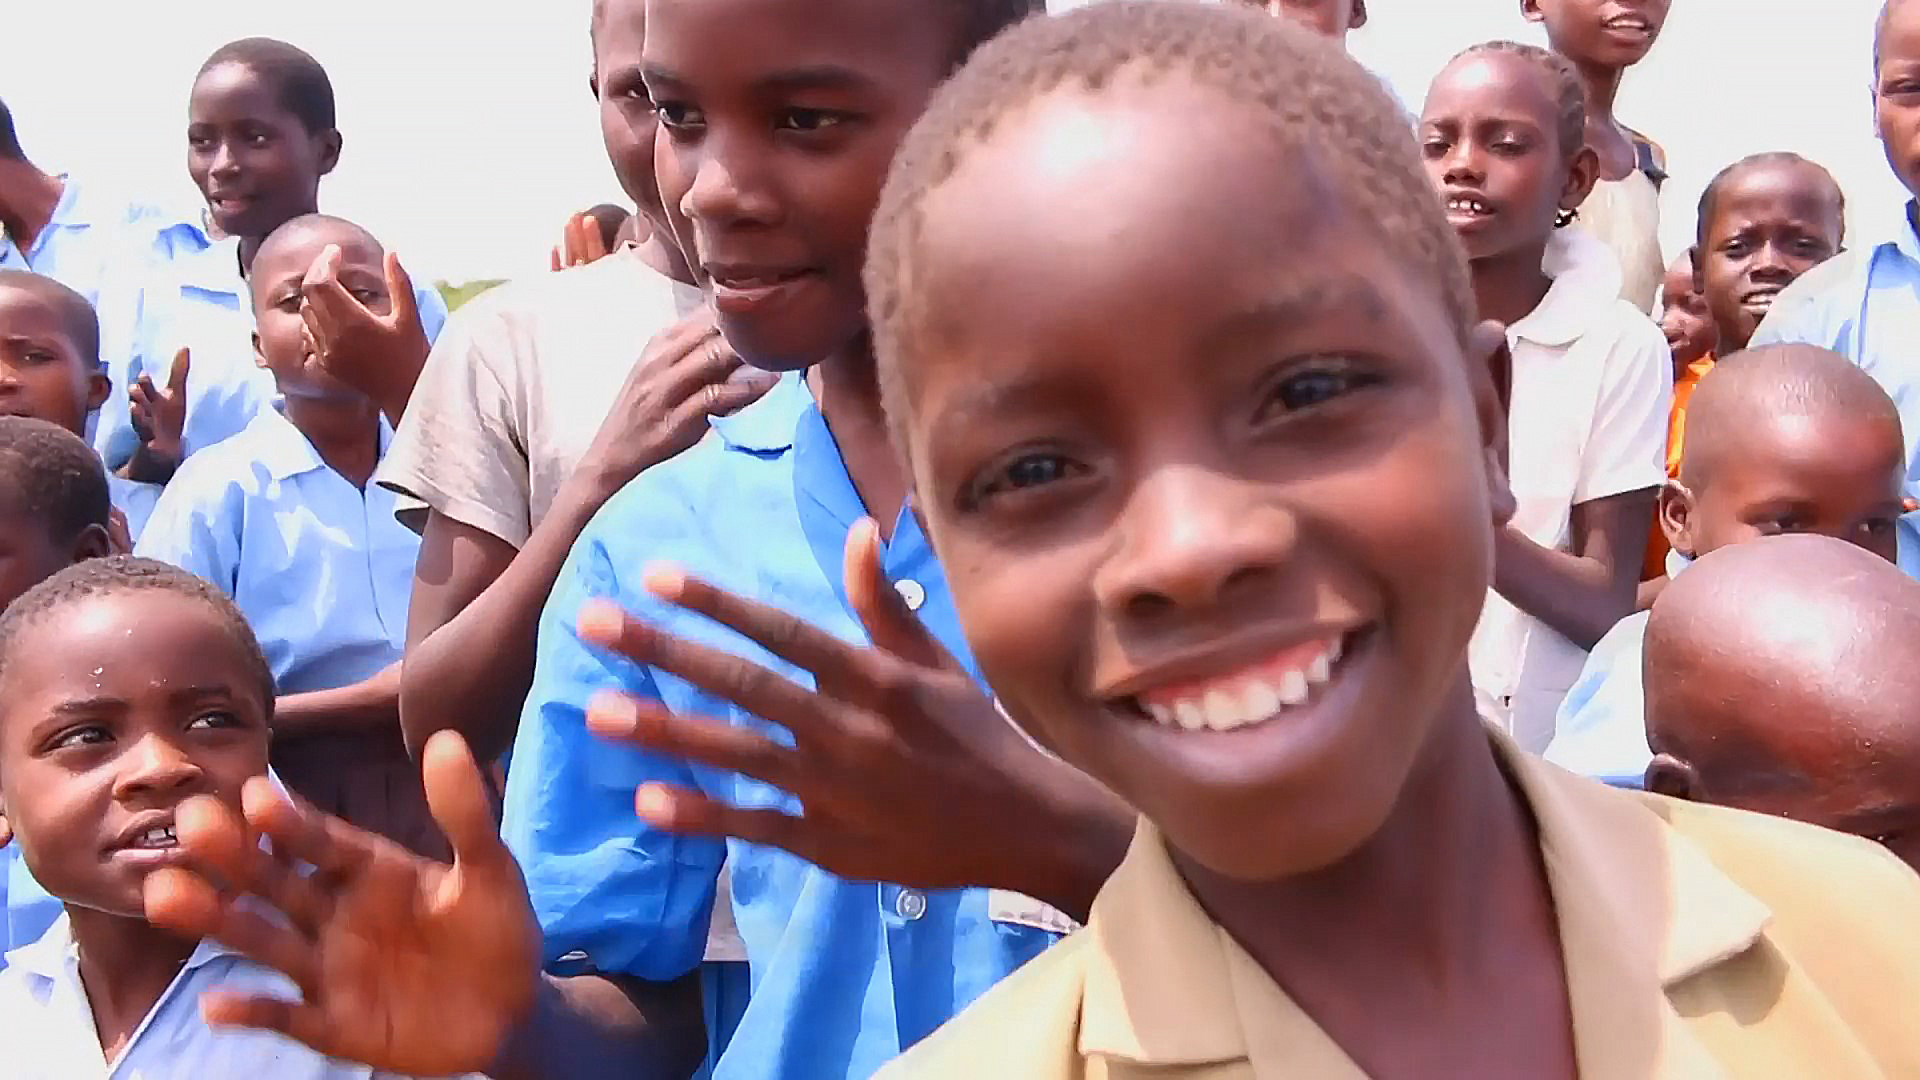 A smiling child in front of a group of friends.